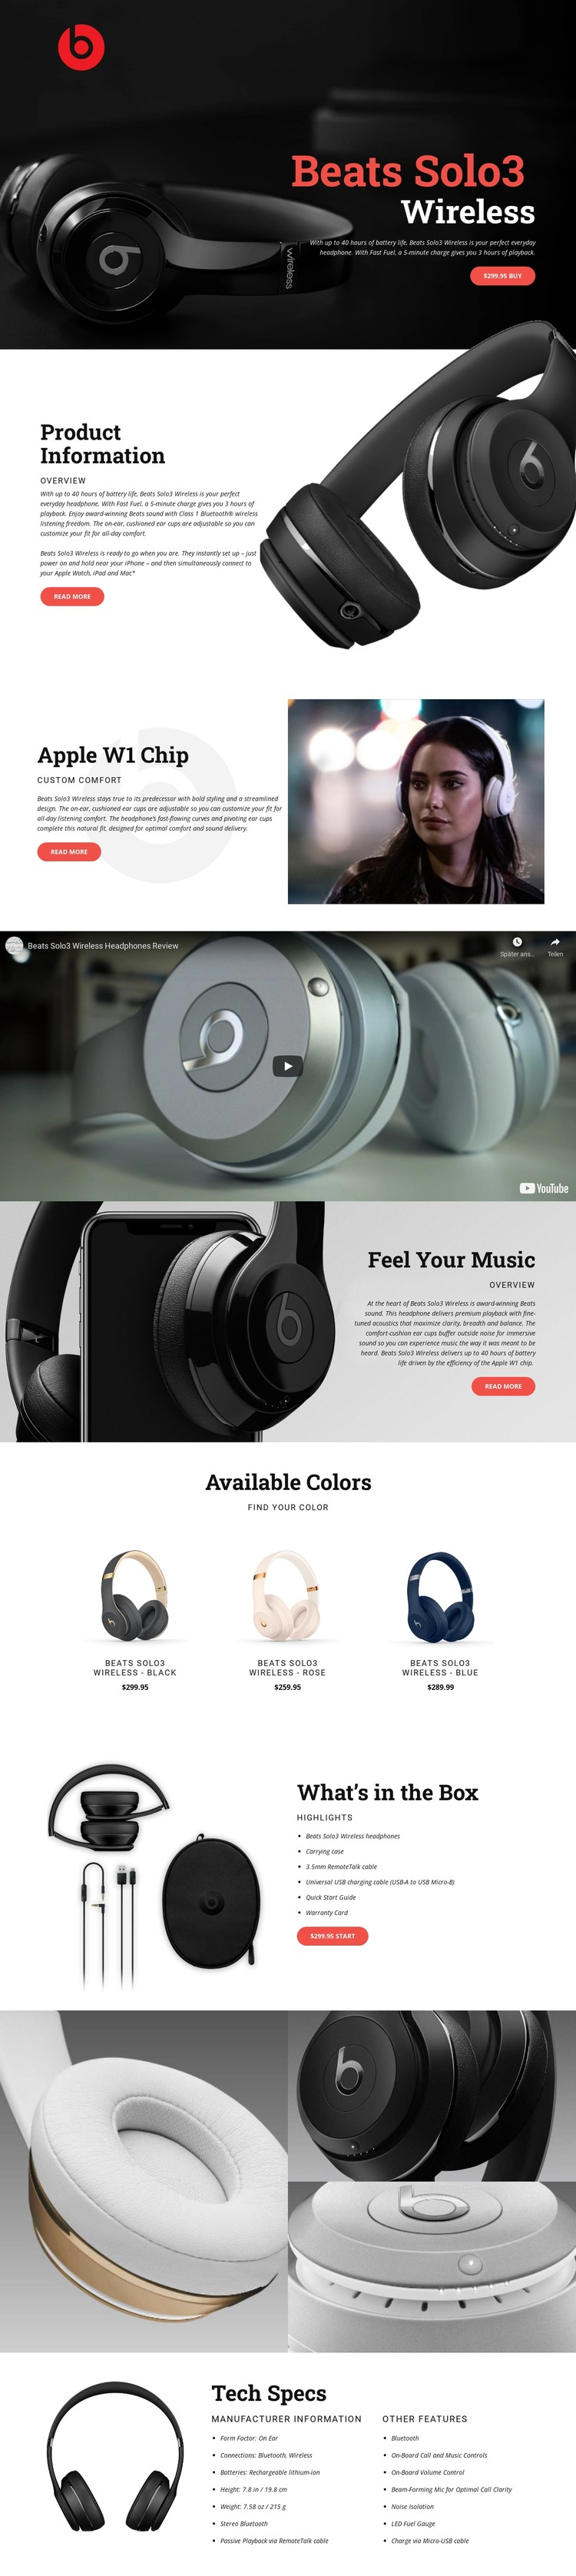 Outstanding quality of music CSS Template